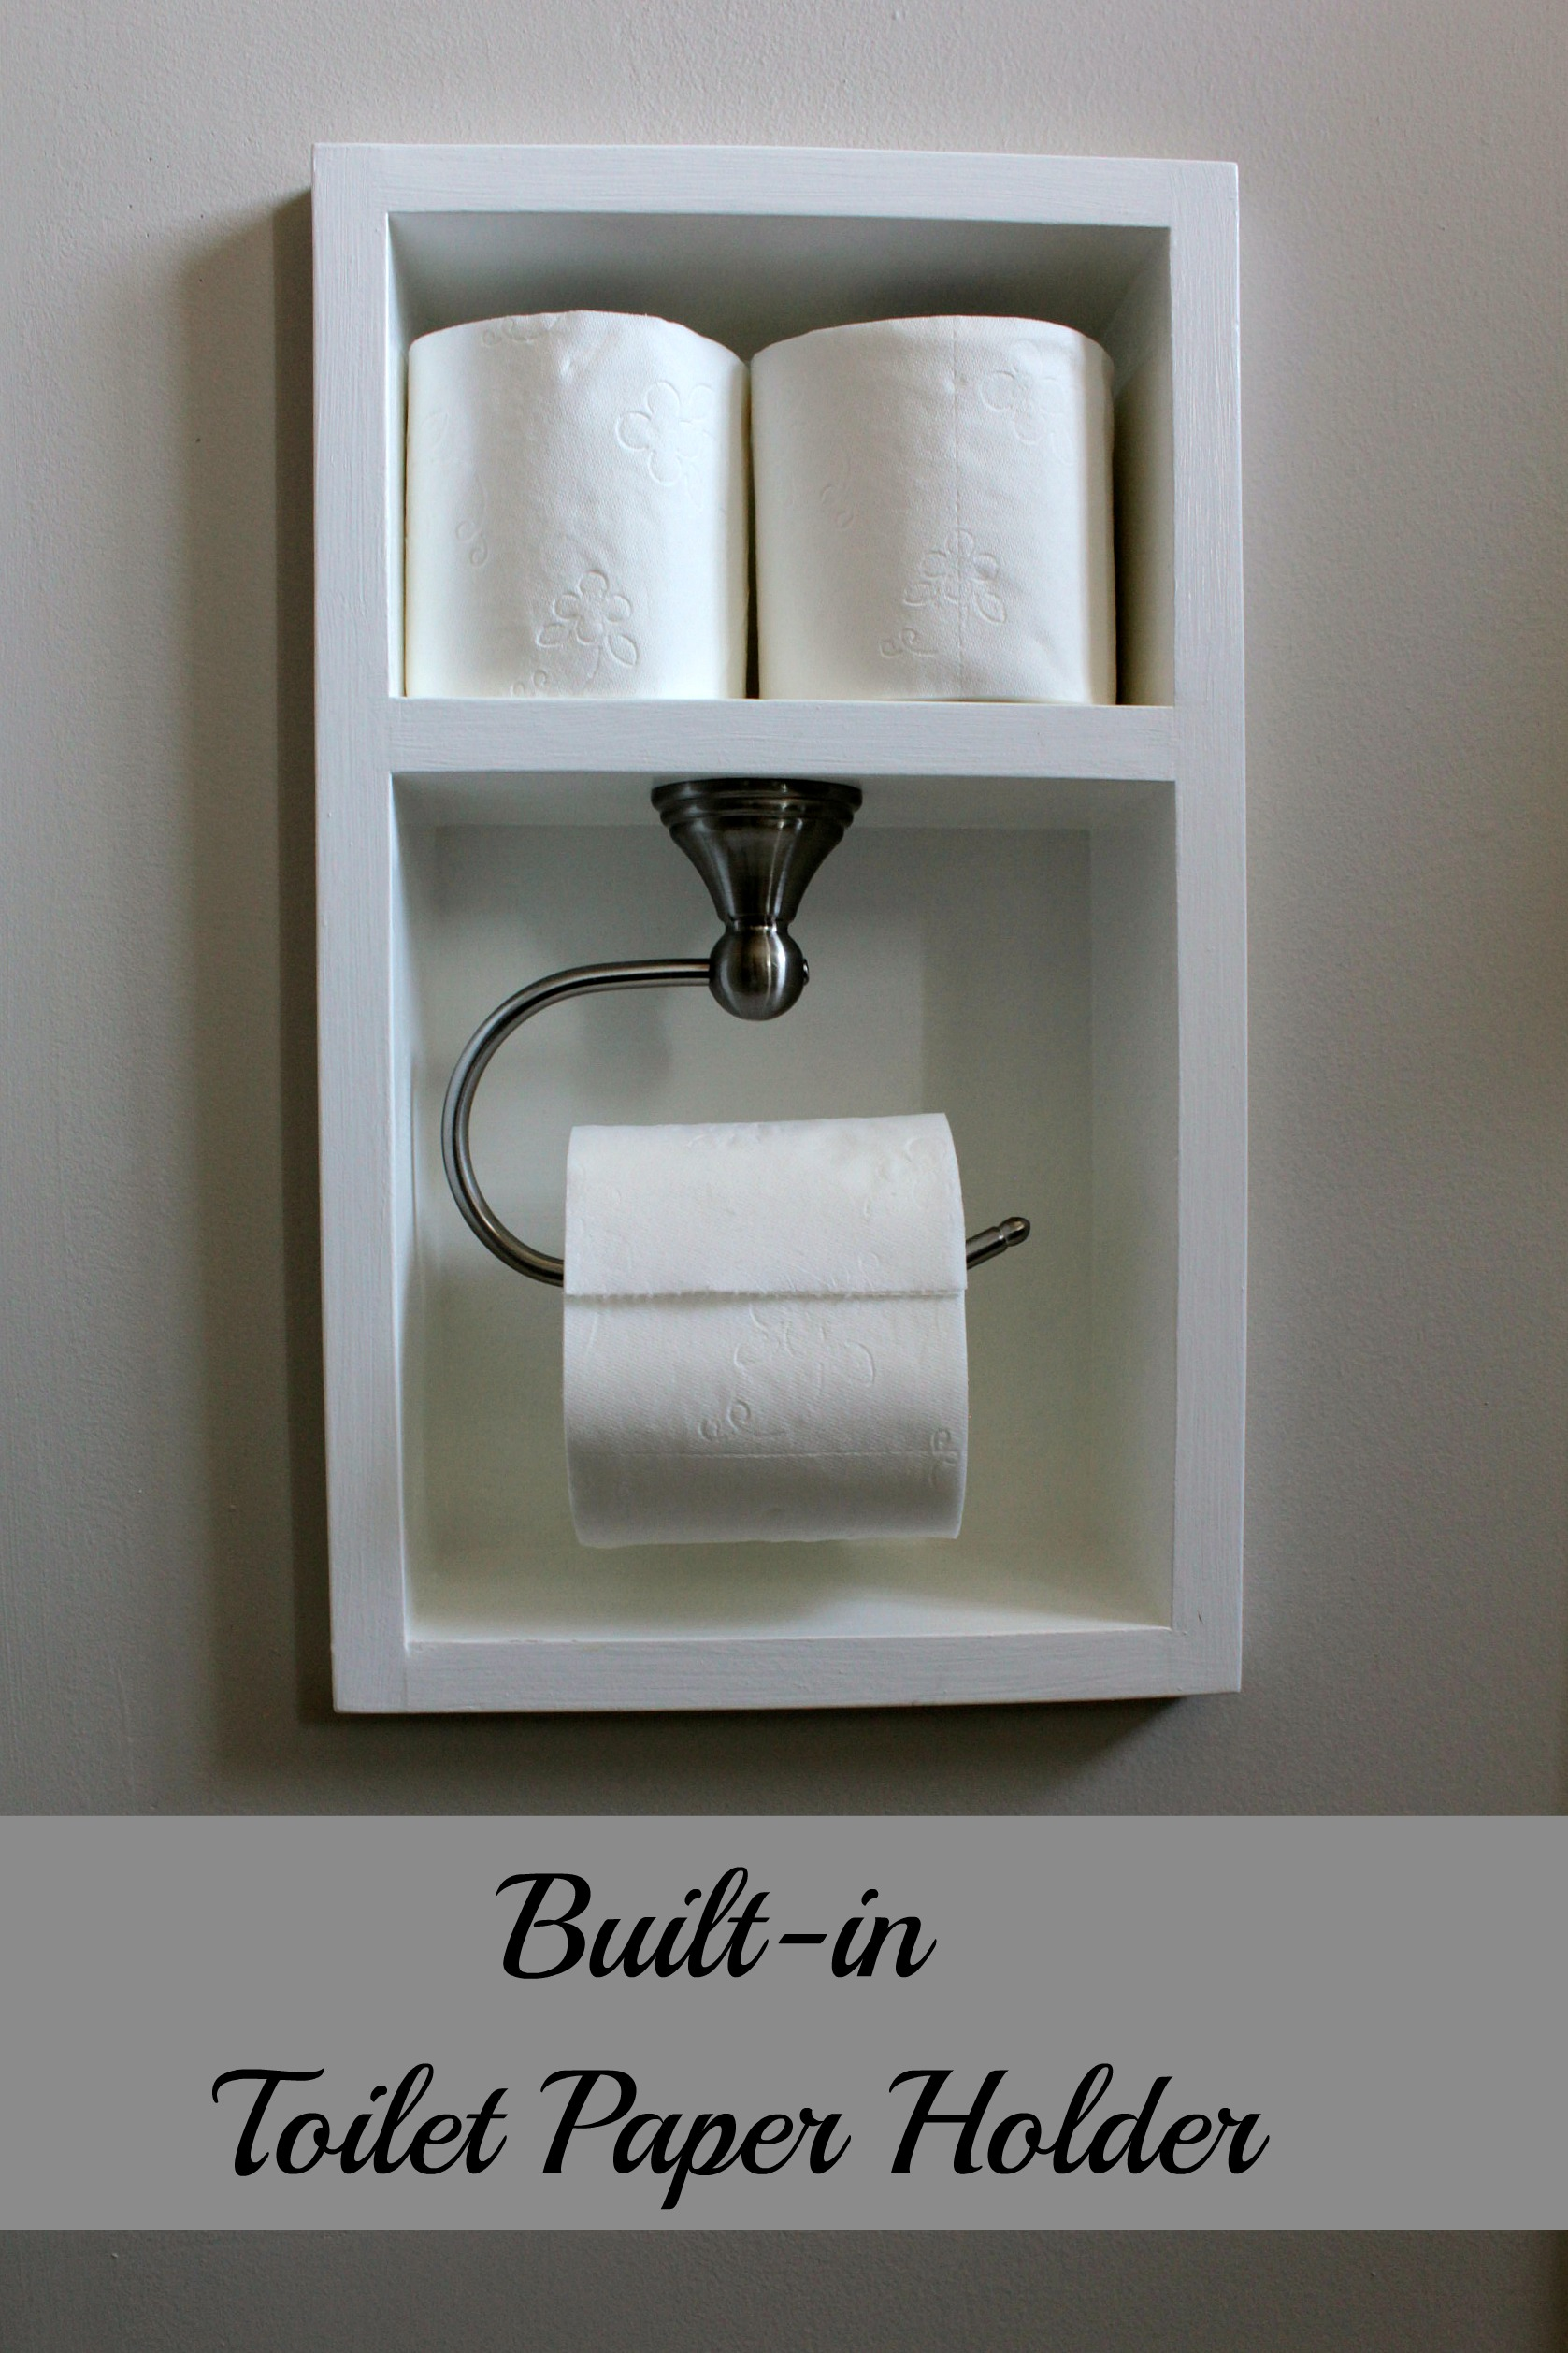 Miraculous Turtles And Tails Recessed Toilet Paper Holder Aka Working With Largest Home Design Picture Inspirations Pitcheantrous